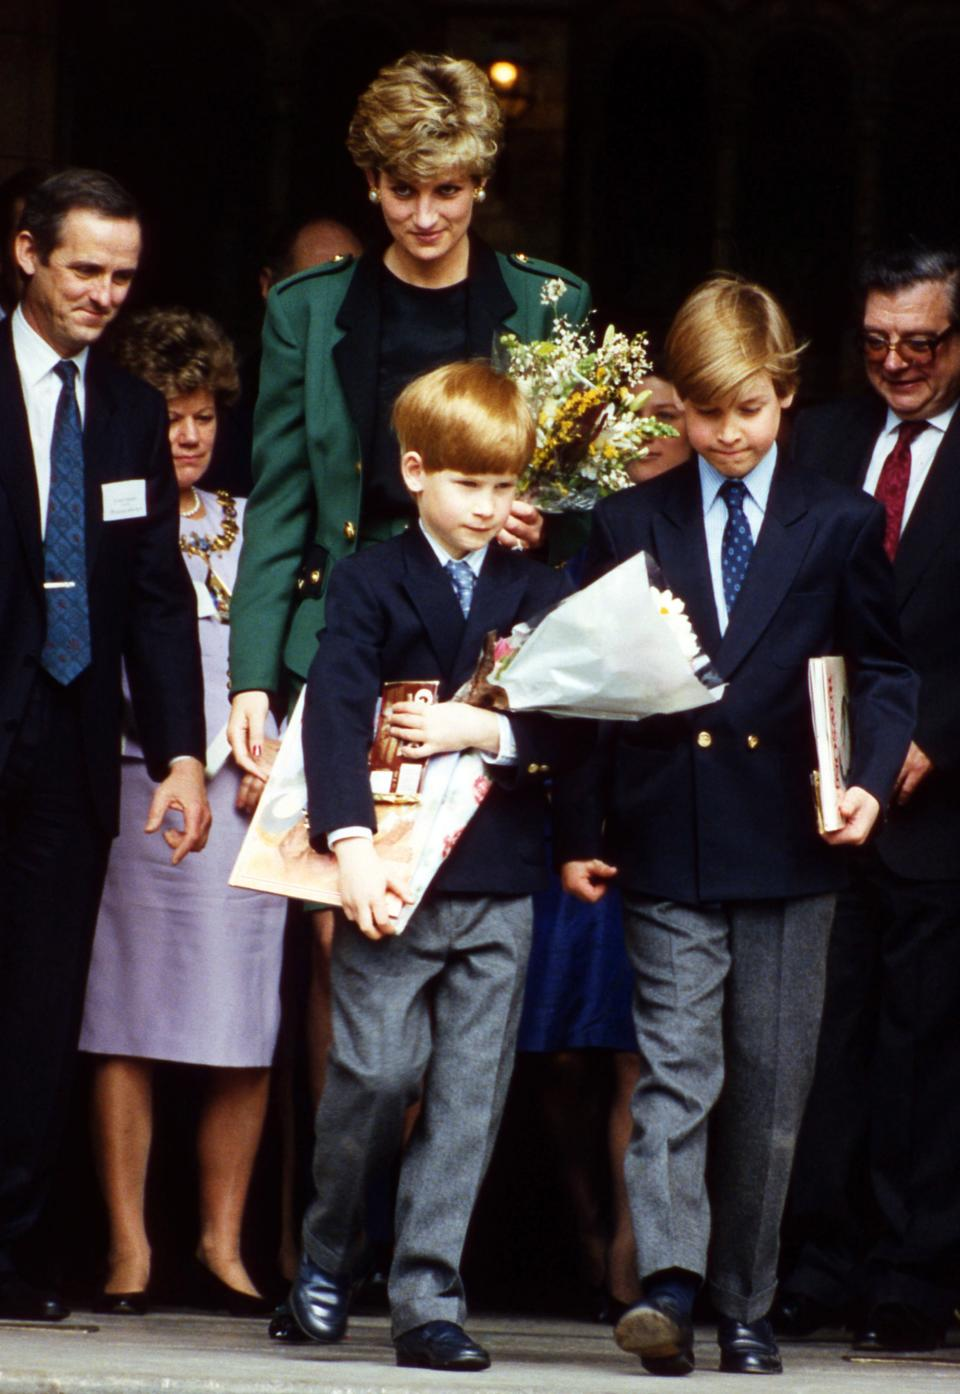 """FILE - In this April 13, 1992 file photo, Princess Diana leaves the Natural History Museum after a dinosaur exhibition with her sons Prince Harry, left, and Prince William. For someone who began her life in the spotlight as """"Shy Di,"""" Princess Diana became an unlikely, revolutionary during her years in the House of Windsor. She helped modernize the monarchy by making it more personal, changing the way the royal family related to people. By interacting more intimately with the public -- kneeling to the level of children, sitting on edge of a patient's hospital bed, writing personal notes to her fans -- she set an example that has been followed by other royals as the monarchy worked to become more human and remain relevant in the 21st century. (AP Photo/Gill Allen, File)"""